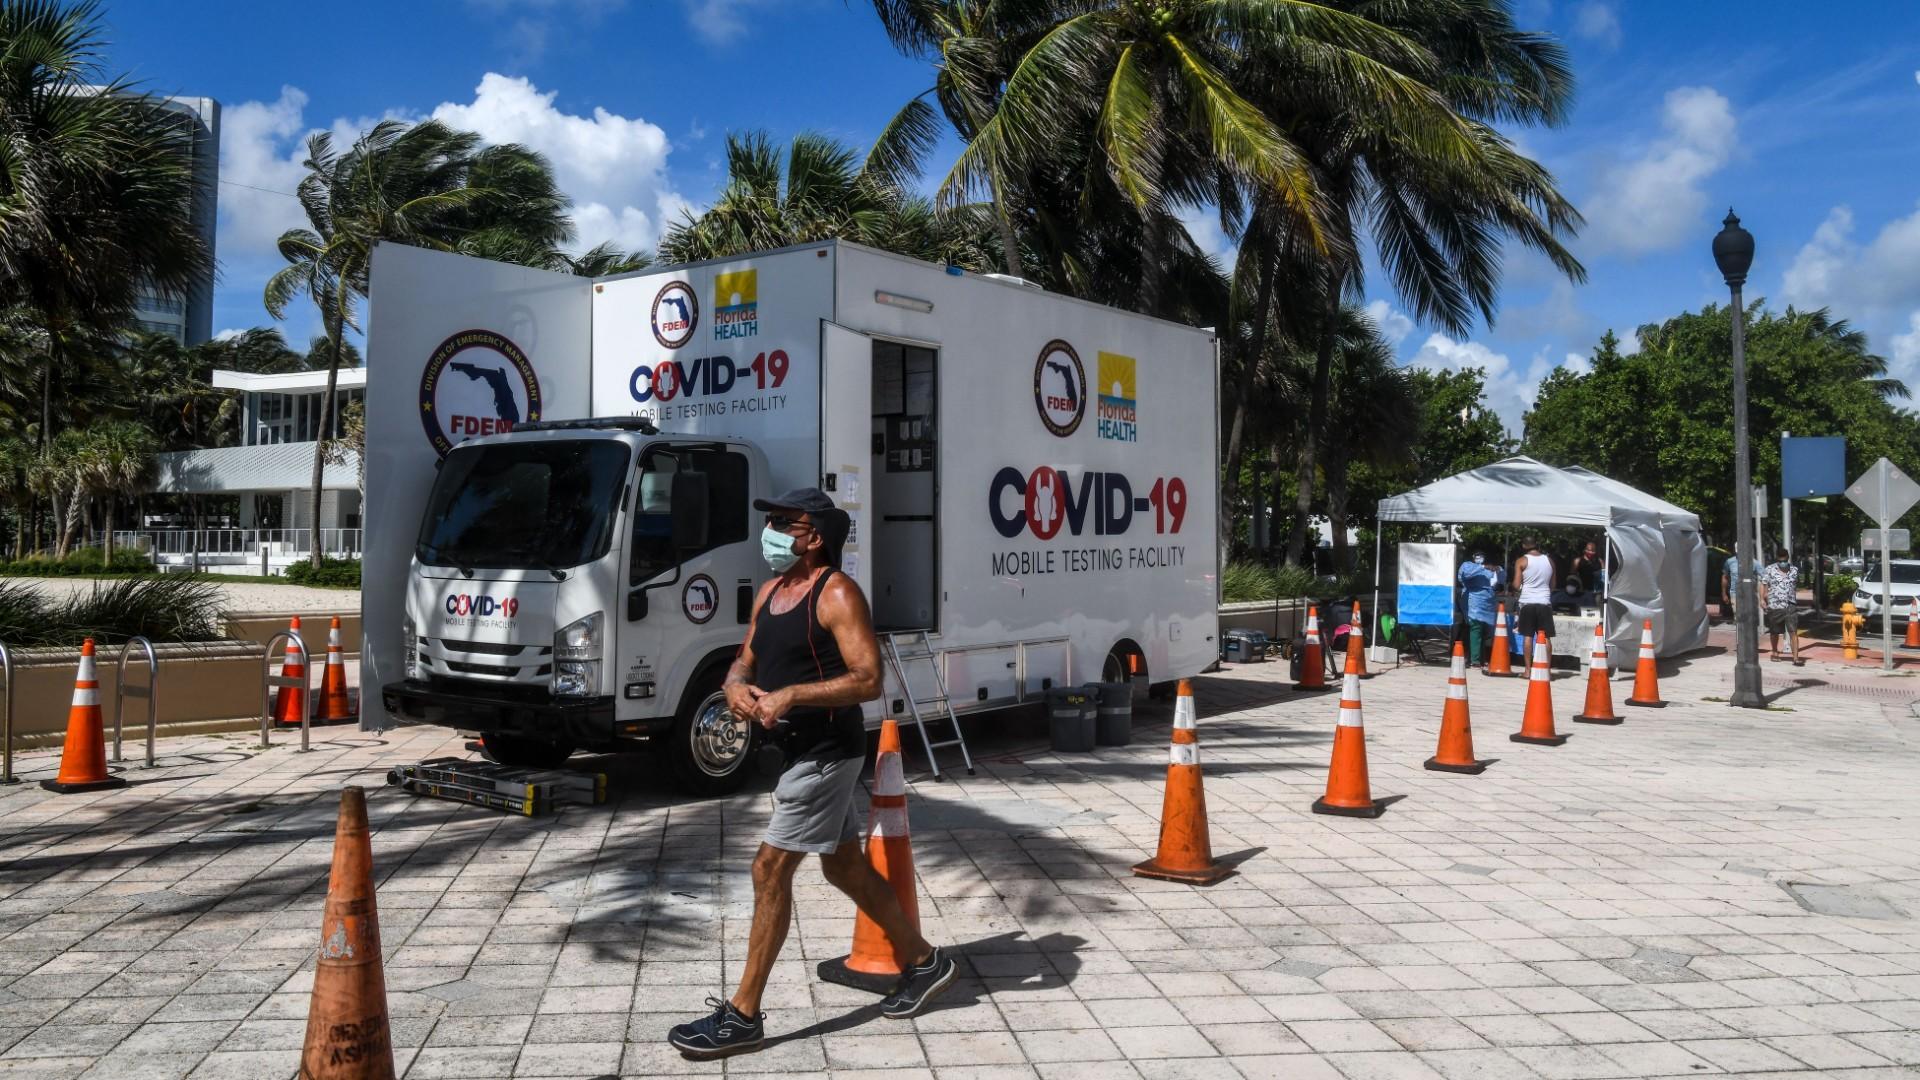 A man walks past the Aardvark Mobile Health's Mobile Covid-19 Testing Truck in Miami Beach, on July 24, 2020. (CHANDAN KHANNA/AFP/AFP via Getty Images)